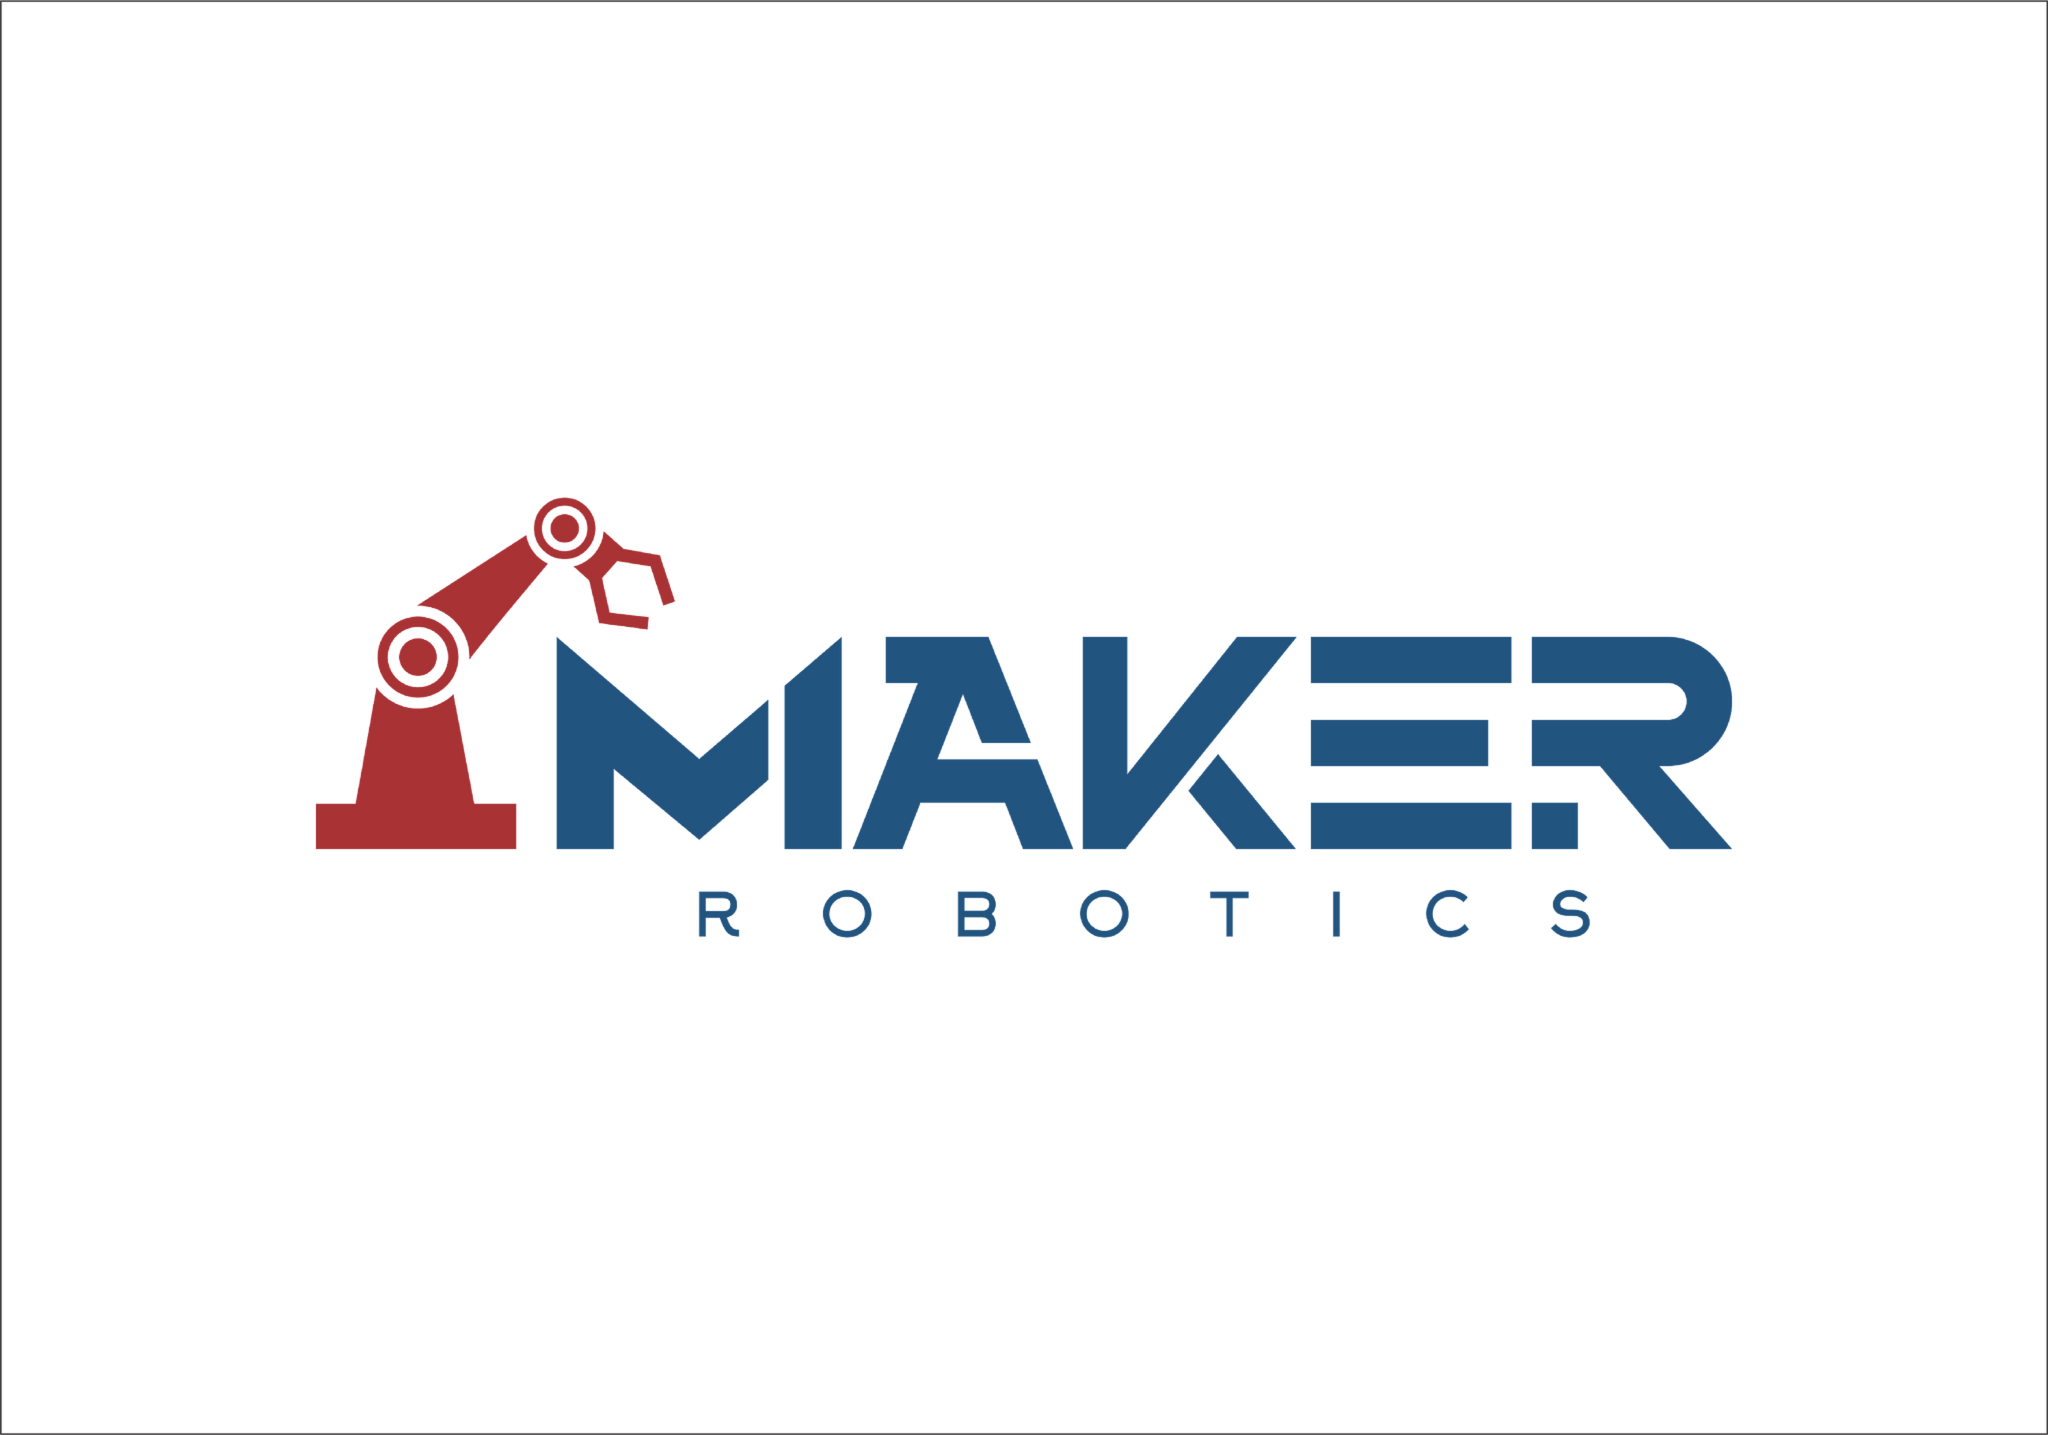 MAKER ROBOTICS